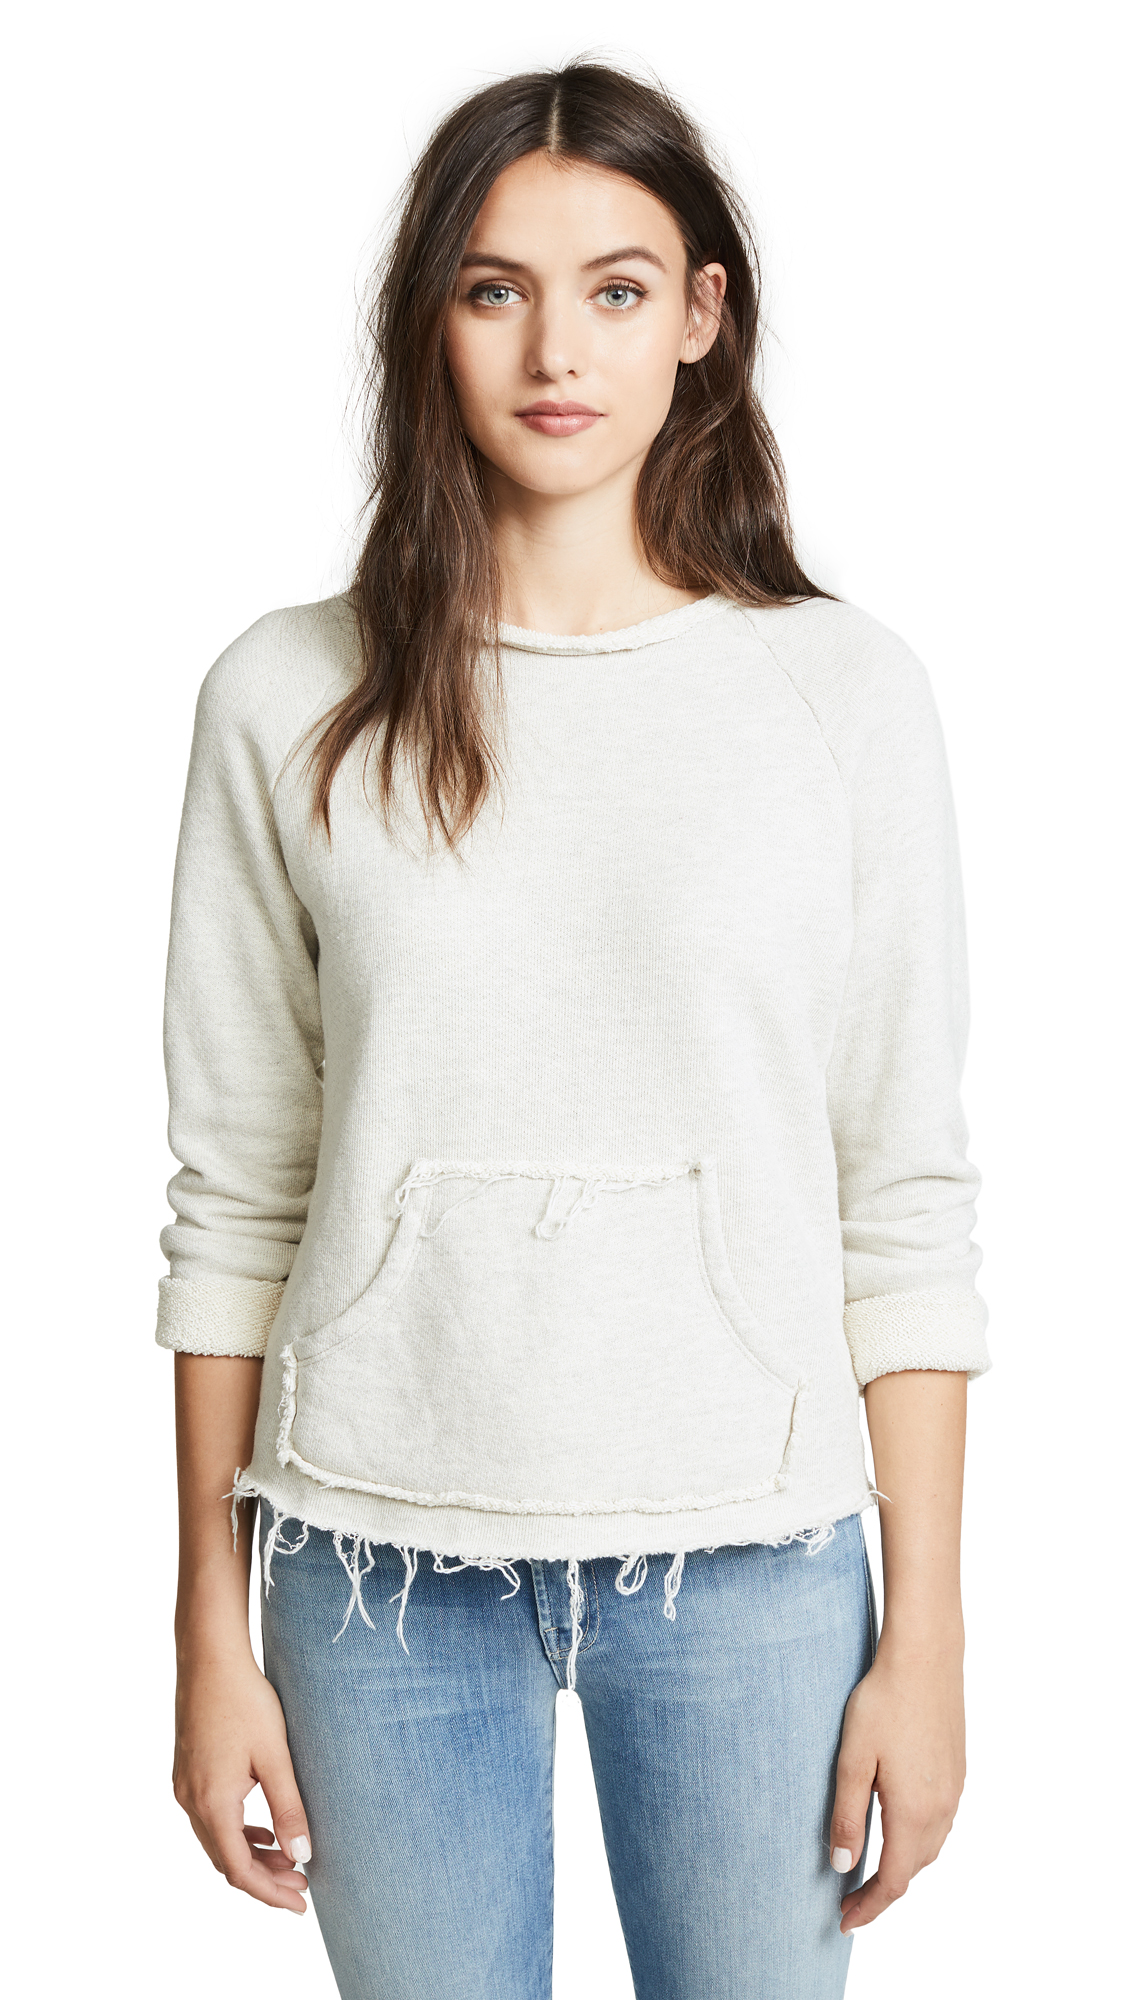 MOTHER The Kangaroo Square Sweatshirt In Unfinished Business